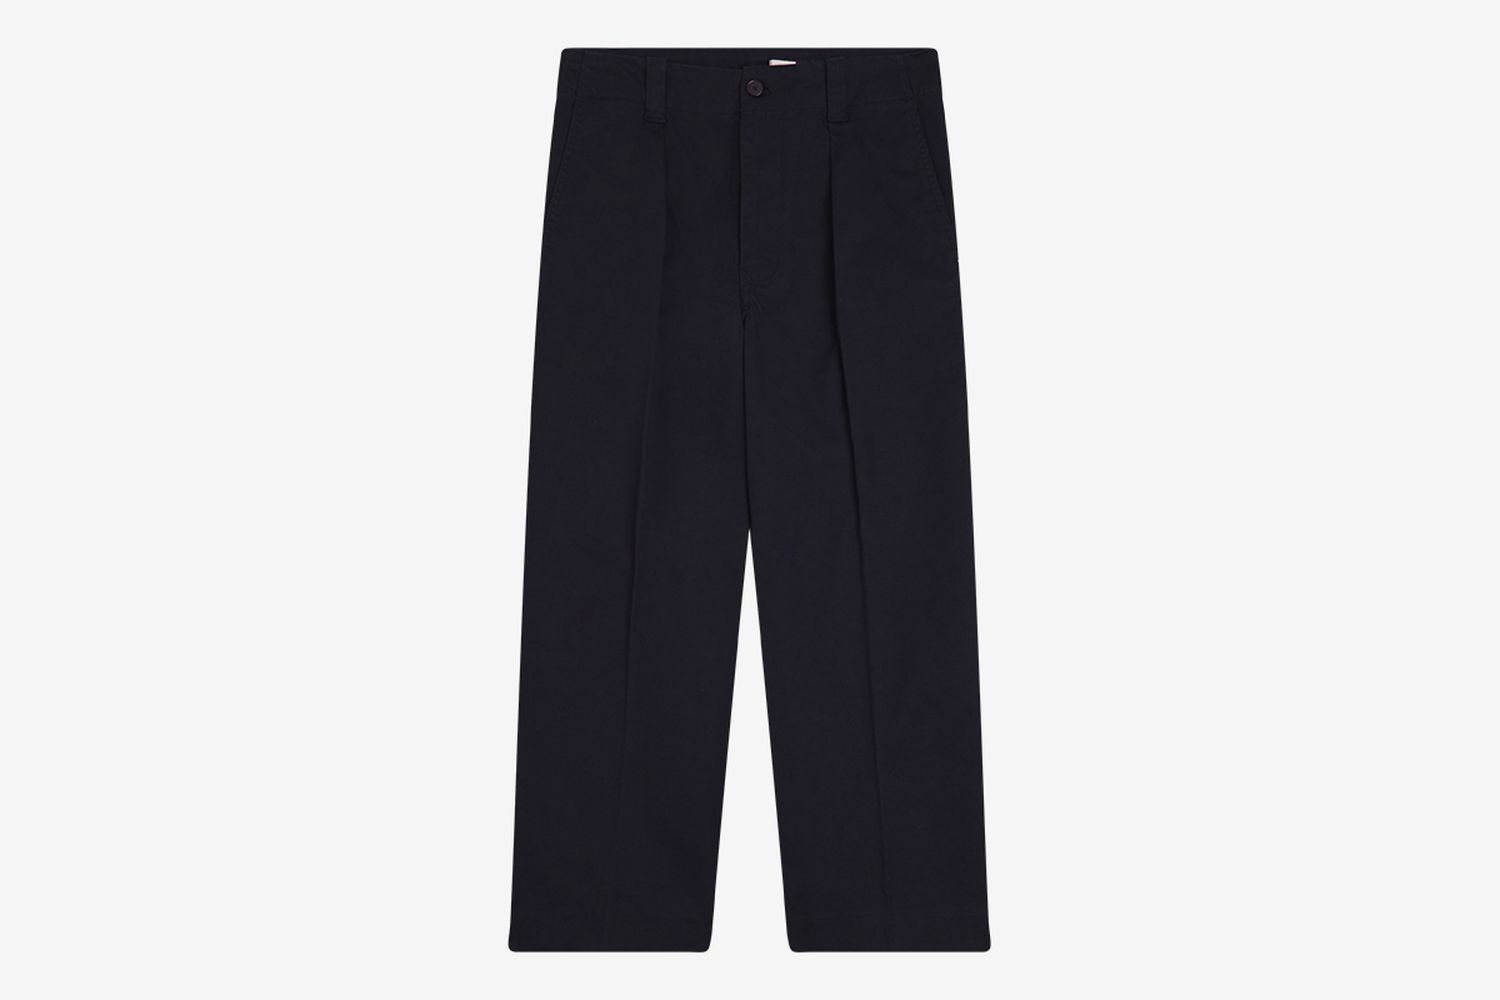 Hilfiger Collection Relaxed Pleated Chino